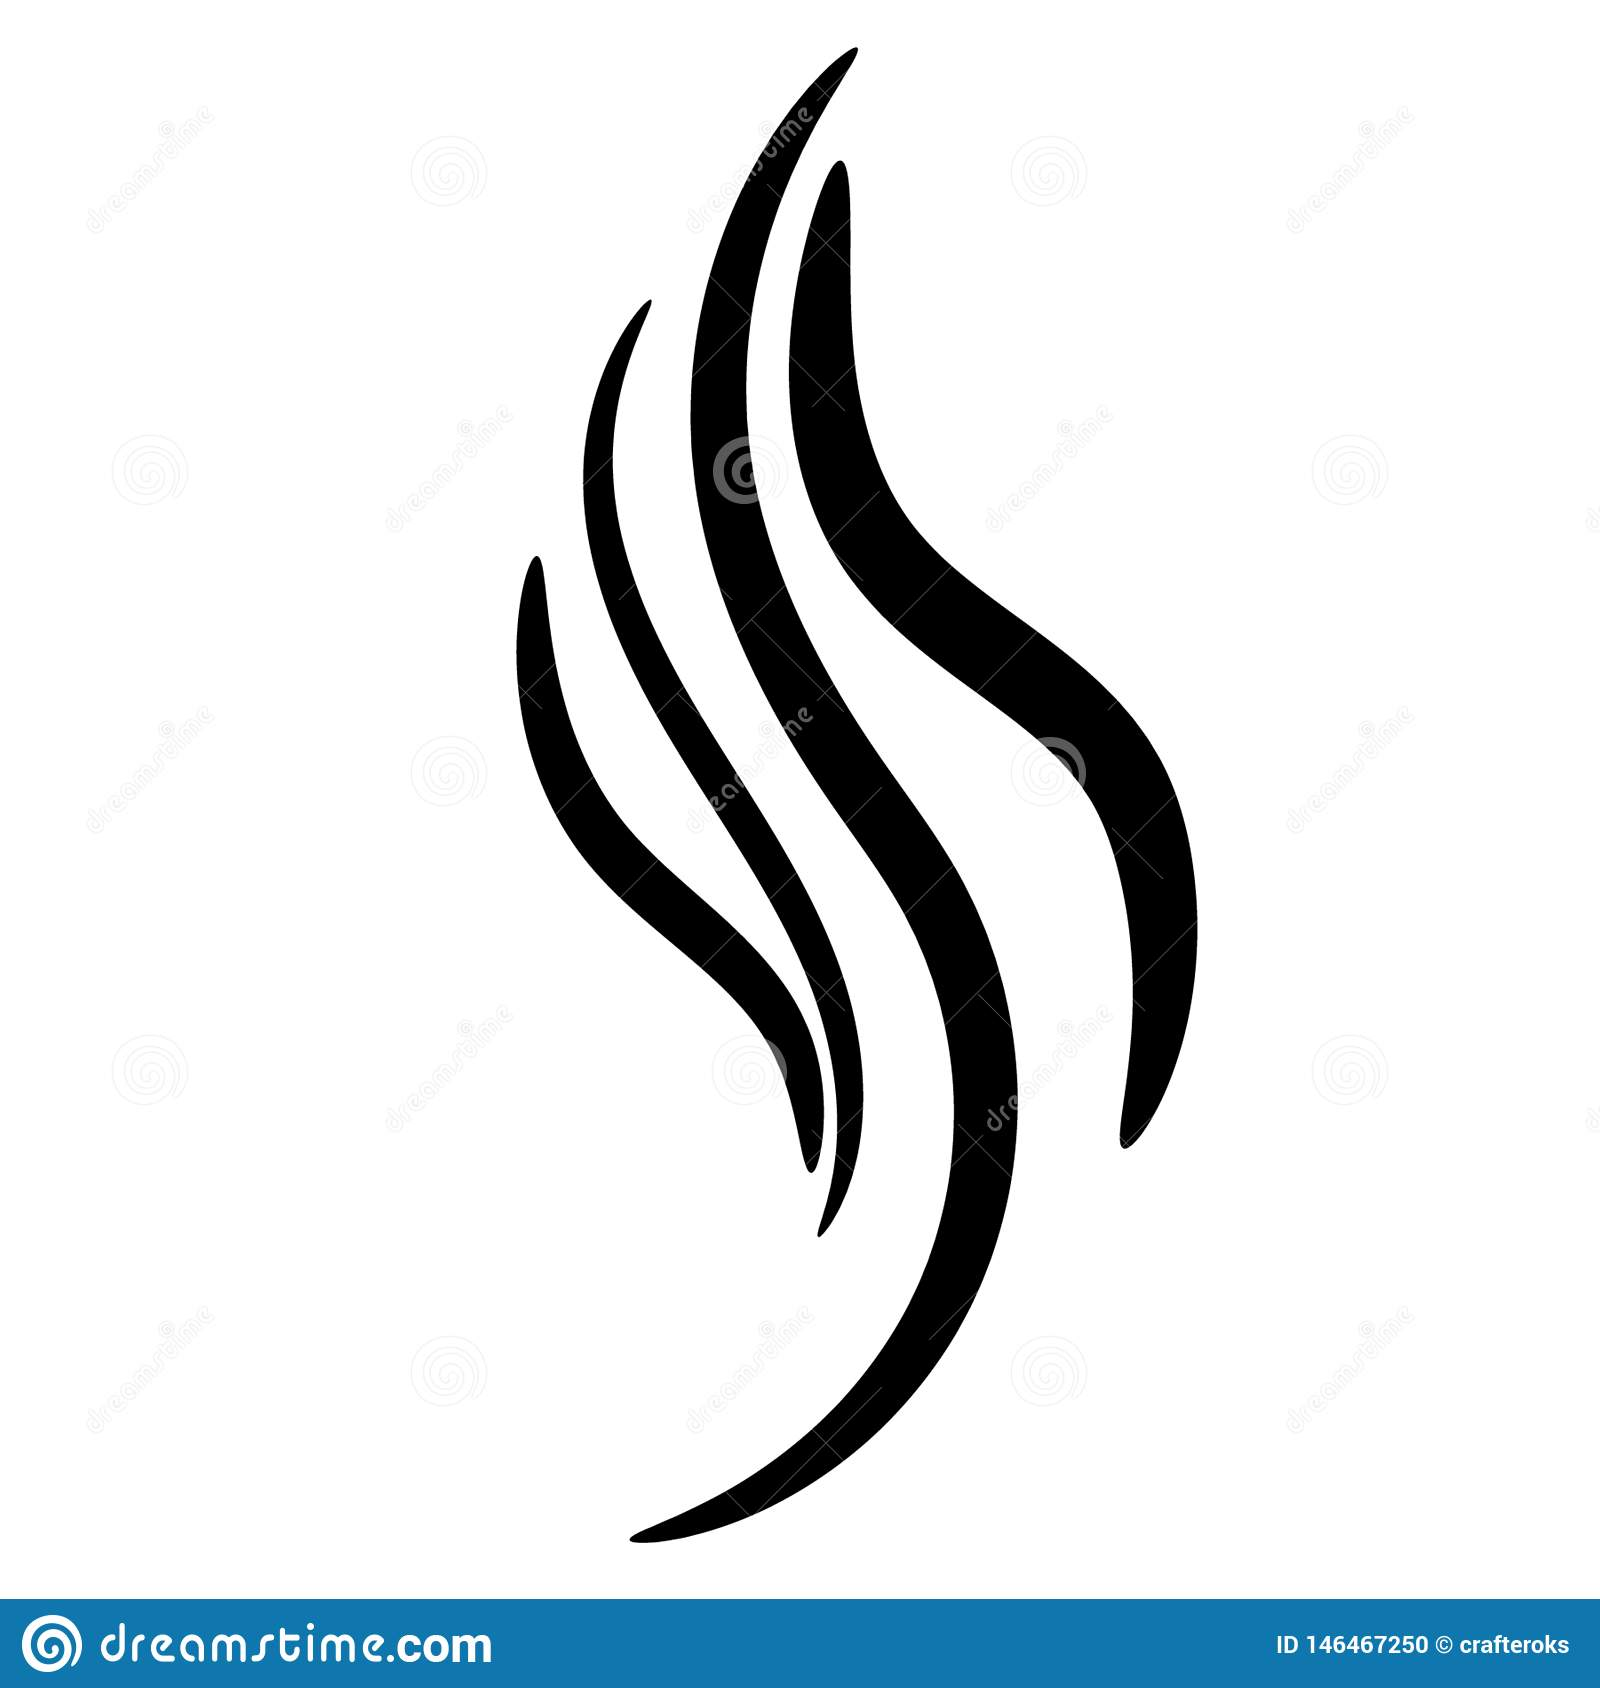 Flame Vector Eps Hand Drawn, Crafteroks, Svg, Free, Free Svg